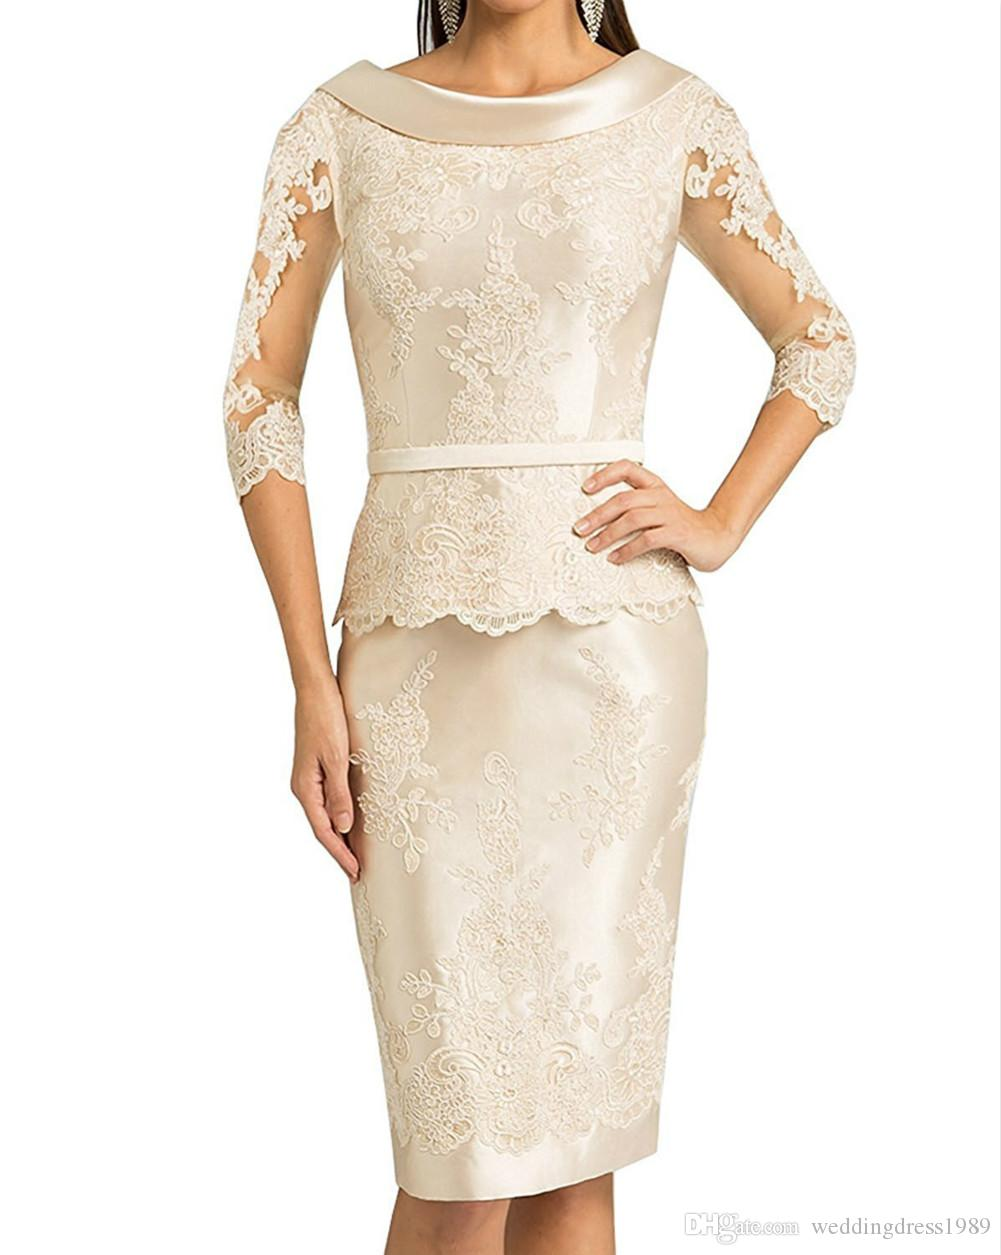 Stunning 3/4 Long Sleeve Mother Formal Wear Lace Mother of groom Wedding Guest Dress Evening Mother Of The Bride Dress Suit Gowns